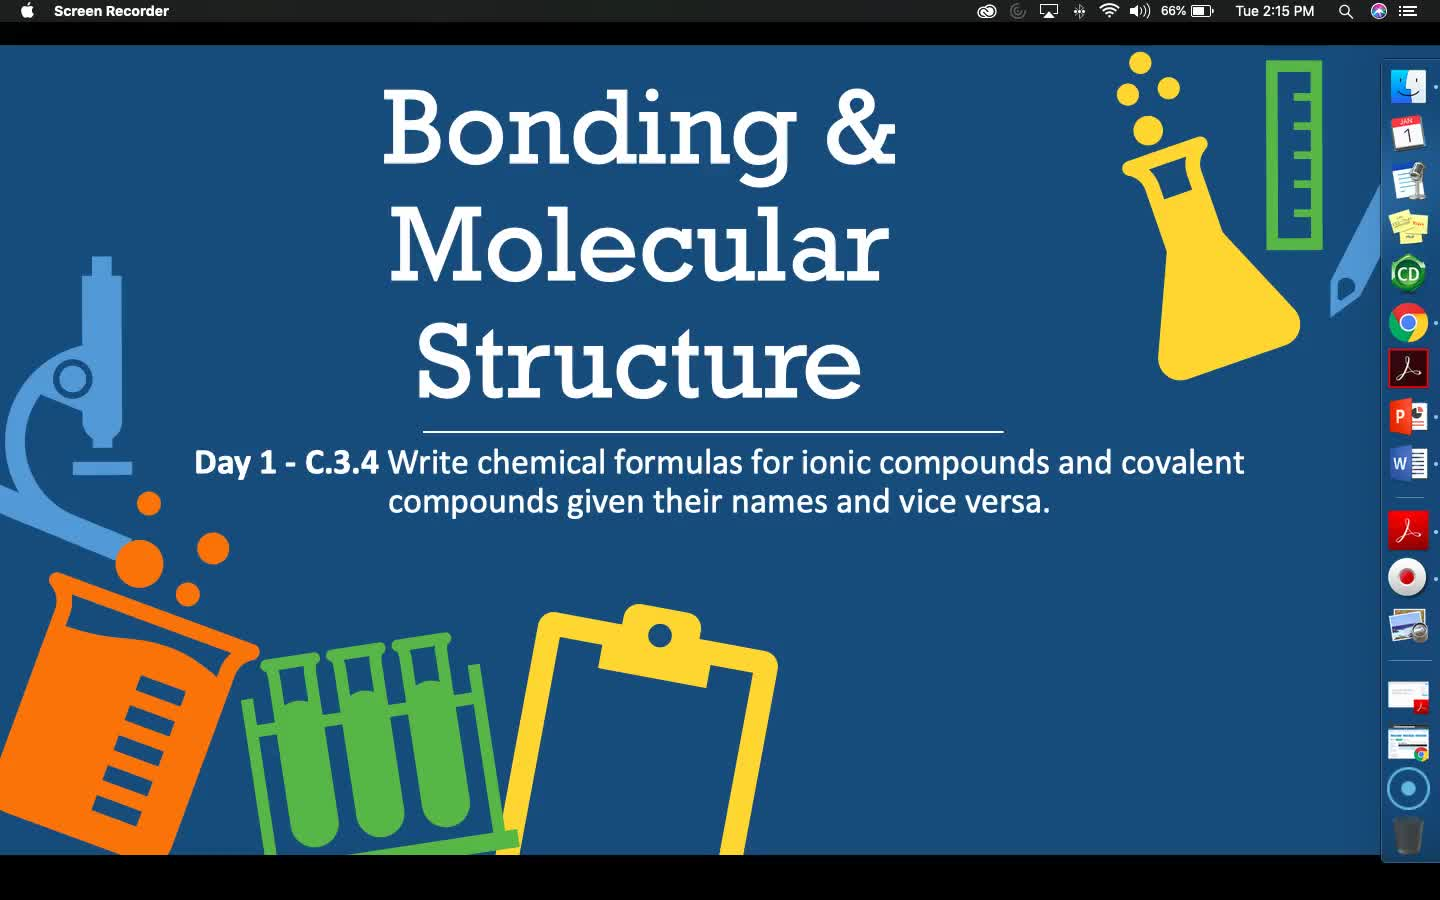 Bonding & Molecular Structure - Lesson 5